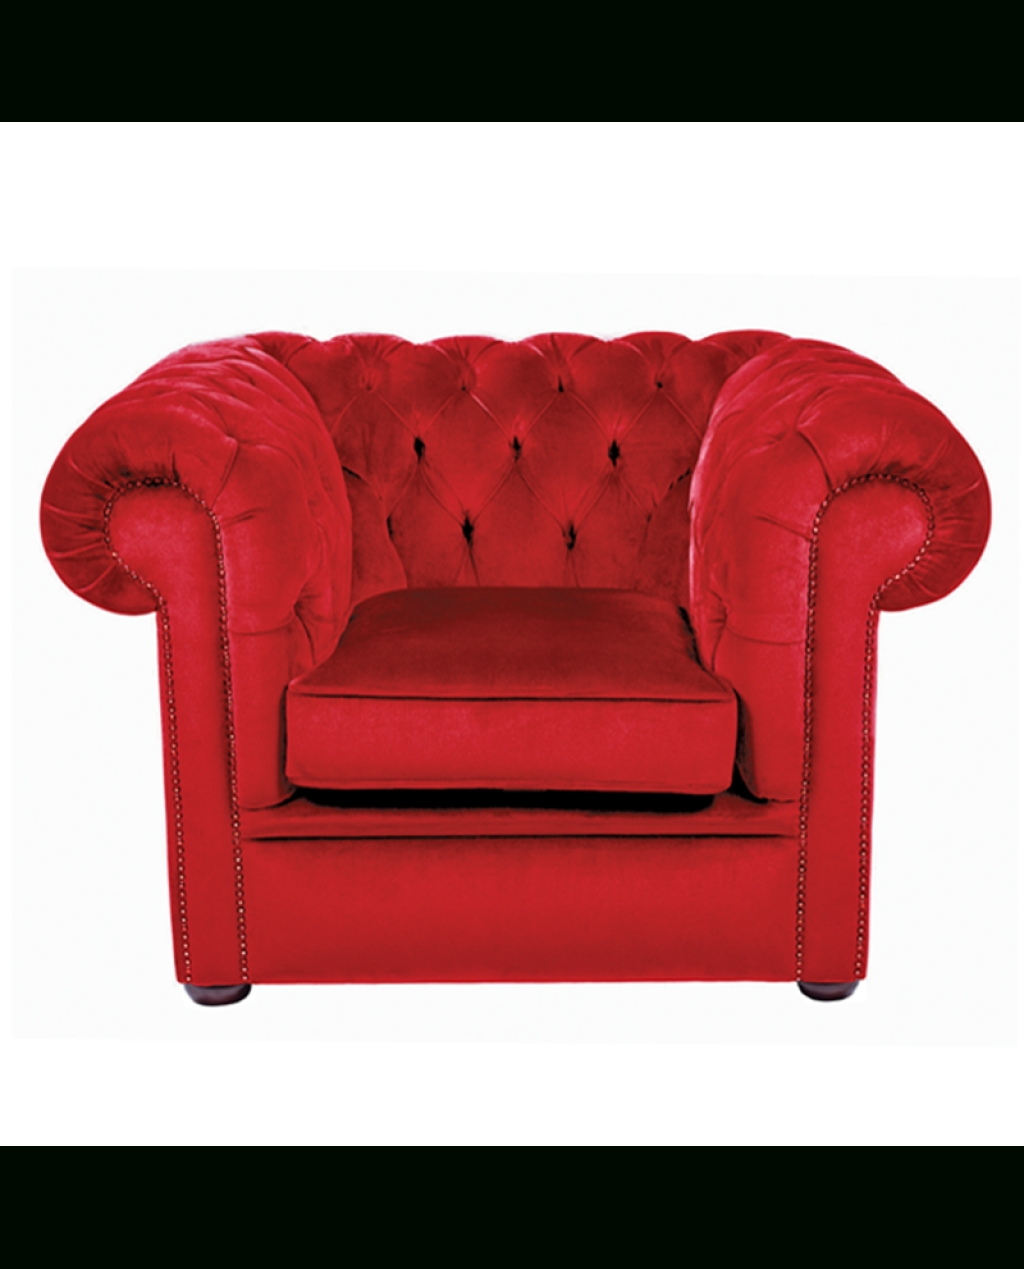 Search – Chesterfield Throughout Red Chesterfield Chairs (View 2 of 20)